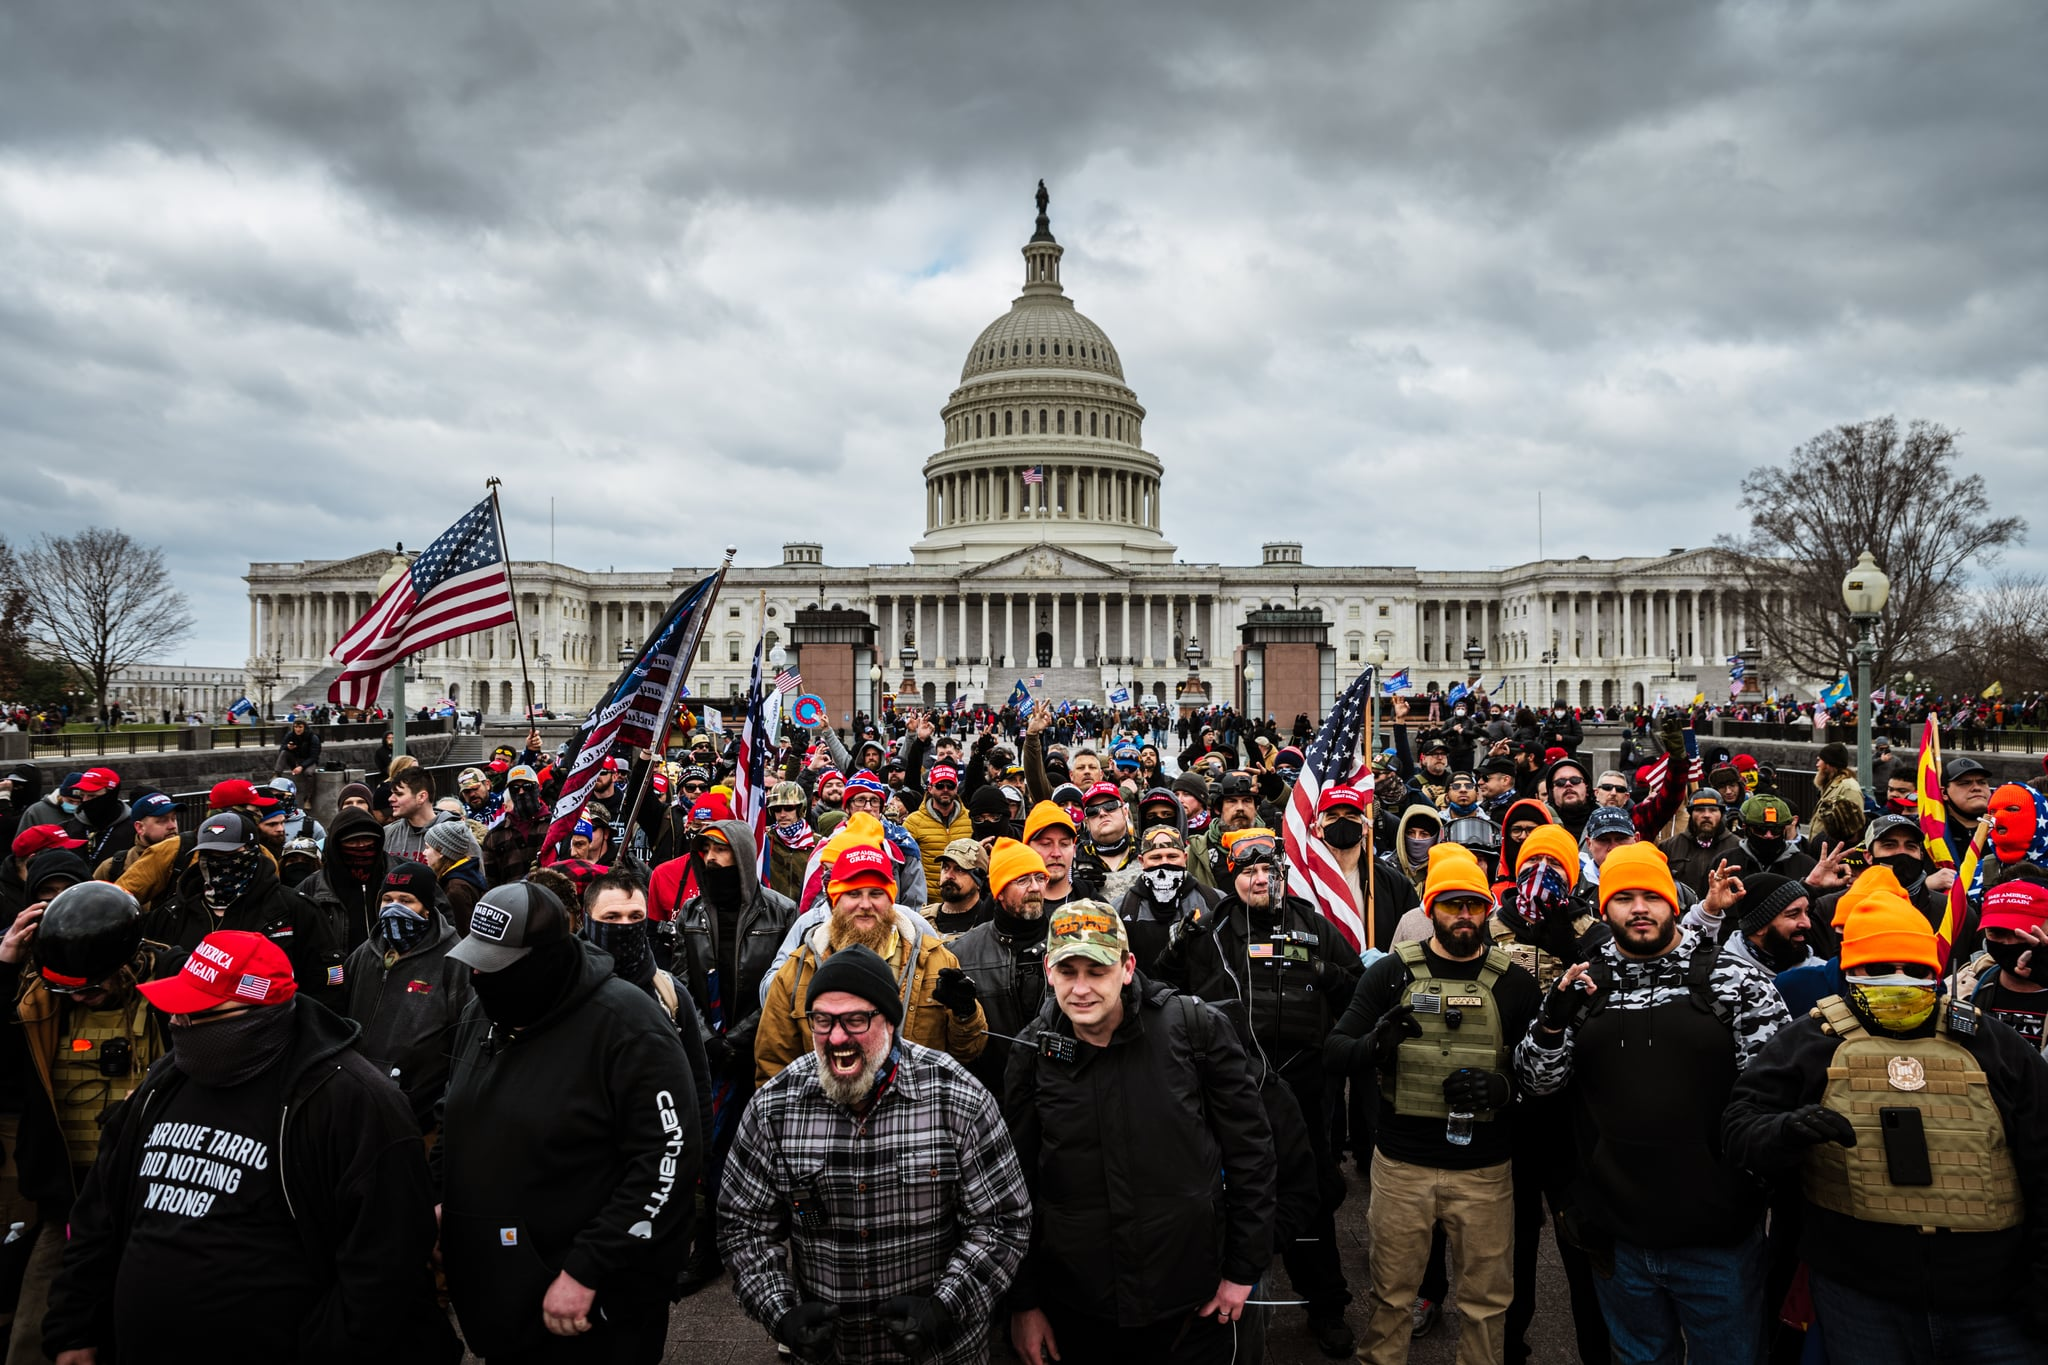 WASHINGTON, DC - JANUARY 06: Pro-Trump protesters gather in front of the U.S. Capitol Building on January 6, 2021 in Washington, DC. A pro-Trump mob stormed the Capitol, breaking windows and clashing with police officers. Trump supporters gathered in the nation's capital today to protest the ratification of President-elect Joe Biden's Electoral College victory over President Trump in the 2020 election. (Photo by Jon Cherry/Getty Images)